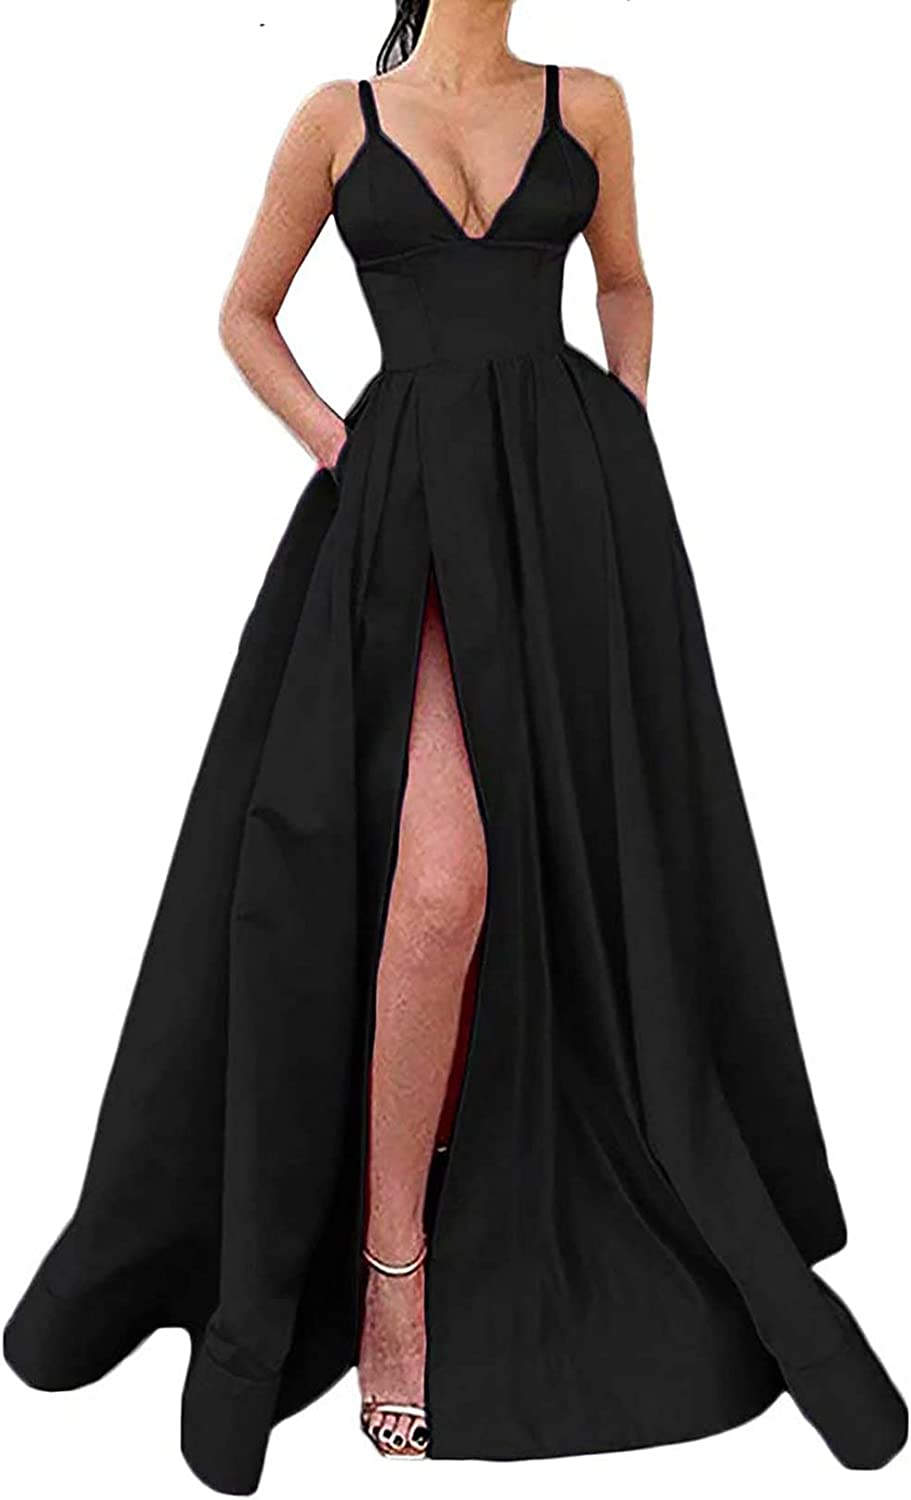 PrettyTatum Prom Dresses for Women Ball Gown Long Satin Formal Evening Gown V Neck Sleeveless with Pockets